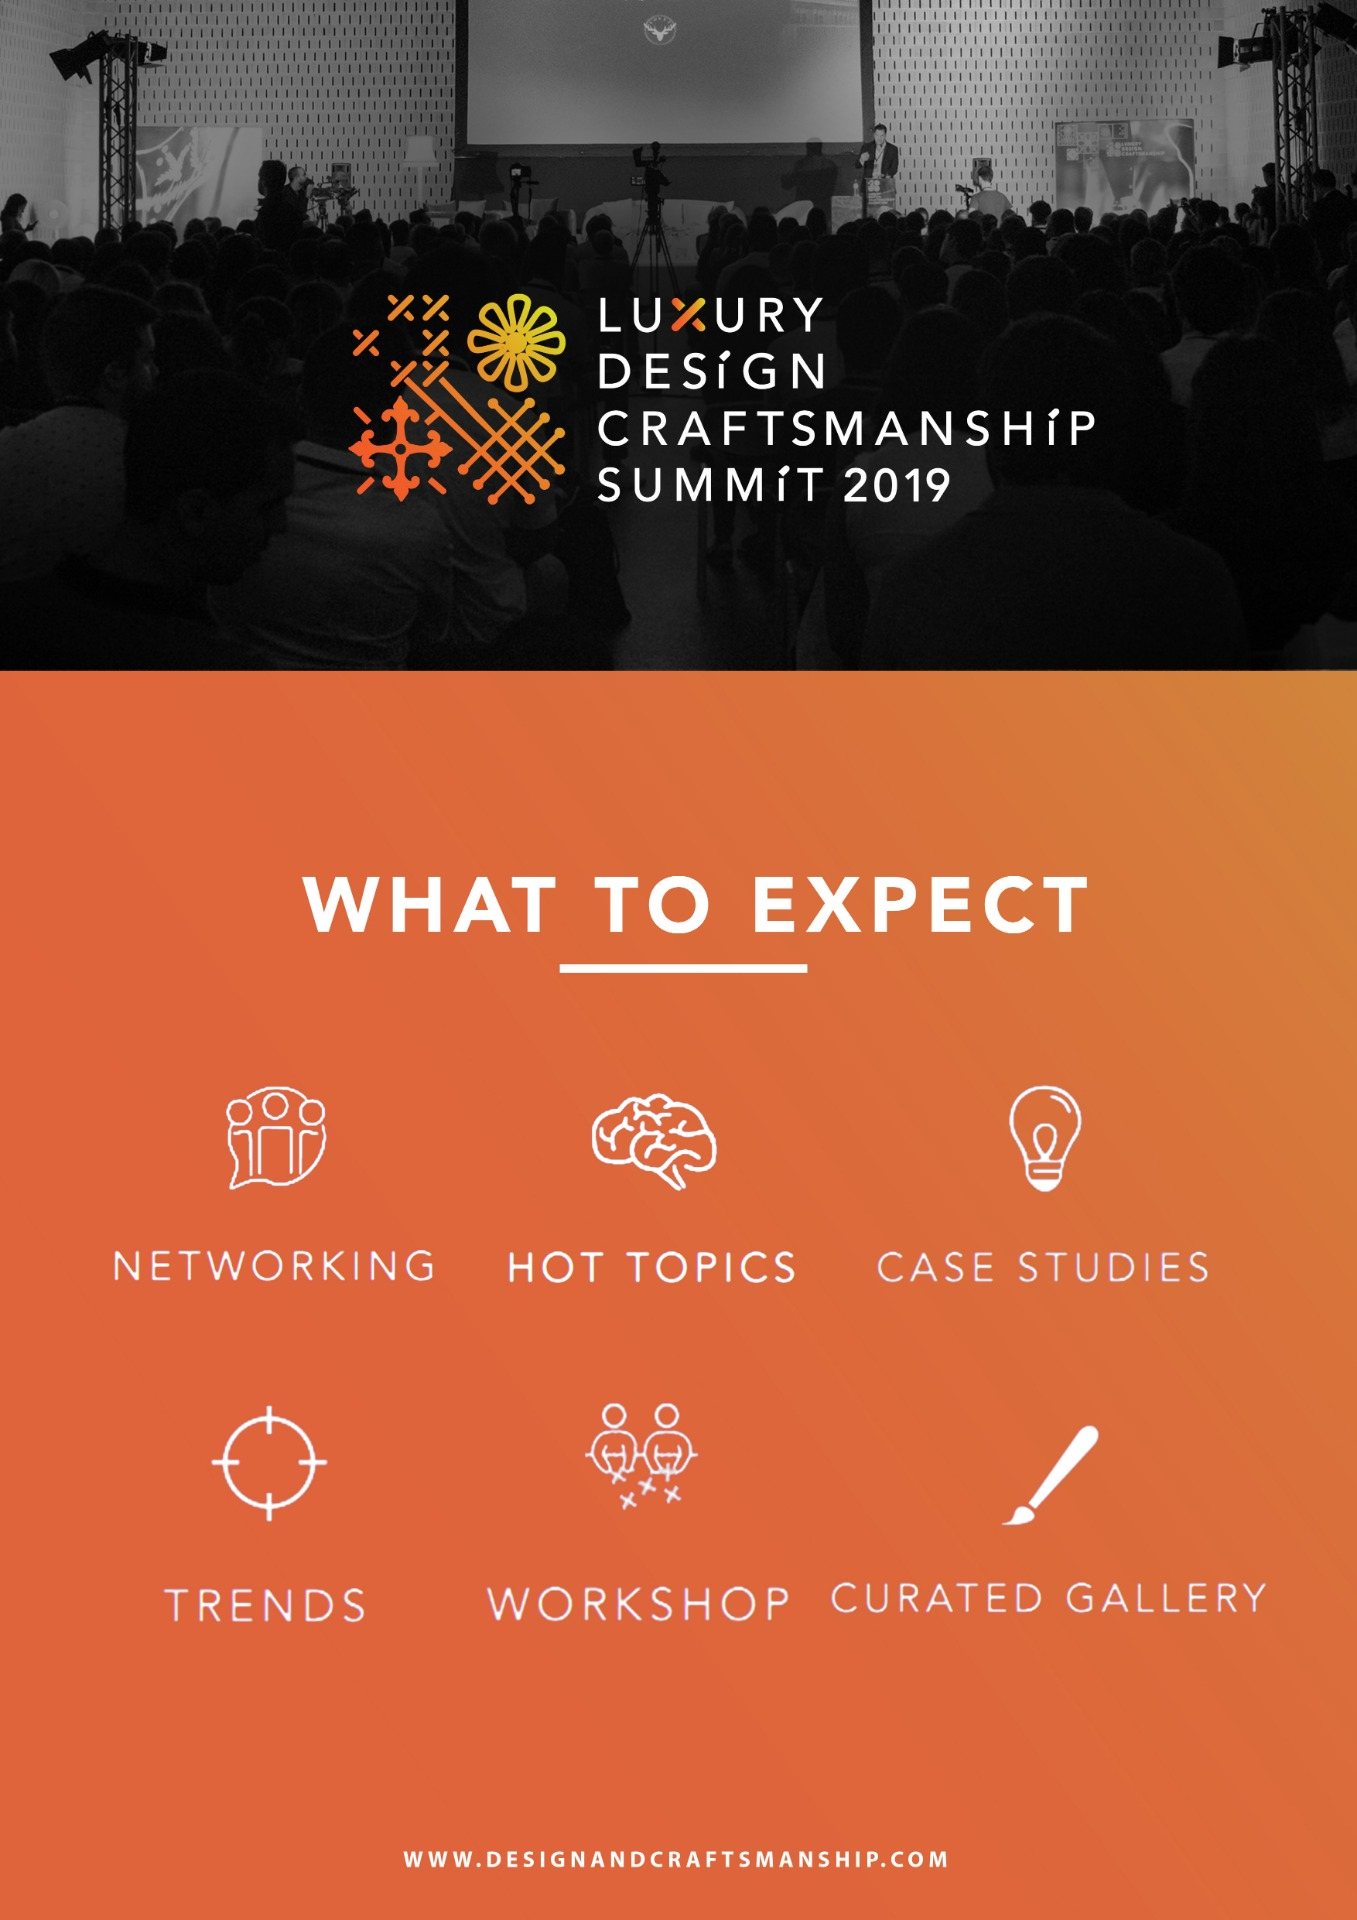 Celebrating Craftsmanship The Luxury Design+Craftsmanship Summit 2019 (1) luxury design Presenting Summit 2019 – An Event Of Luxury Design and Craftmanship Celebrating Craftsmanship The Luxury DesignCraftsmanship Summit 2019 1